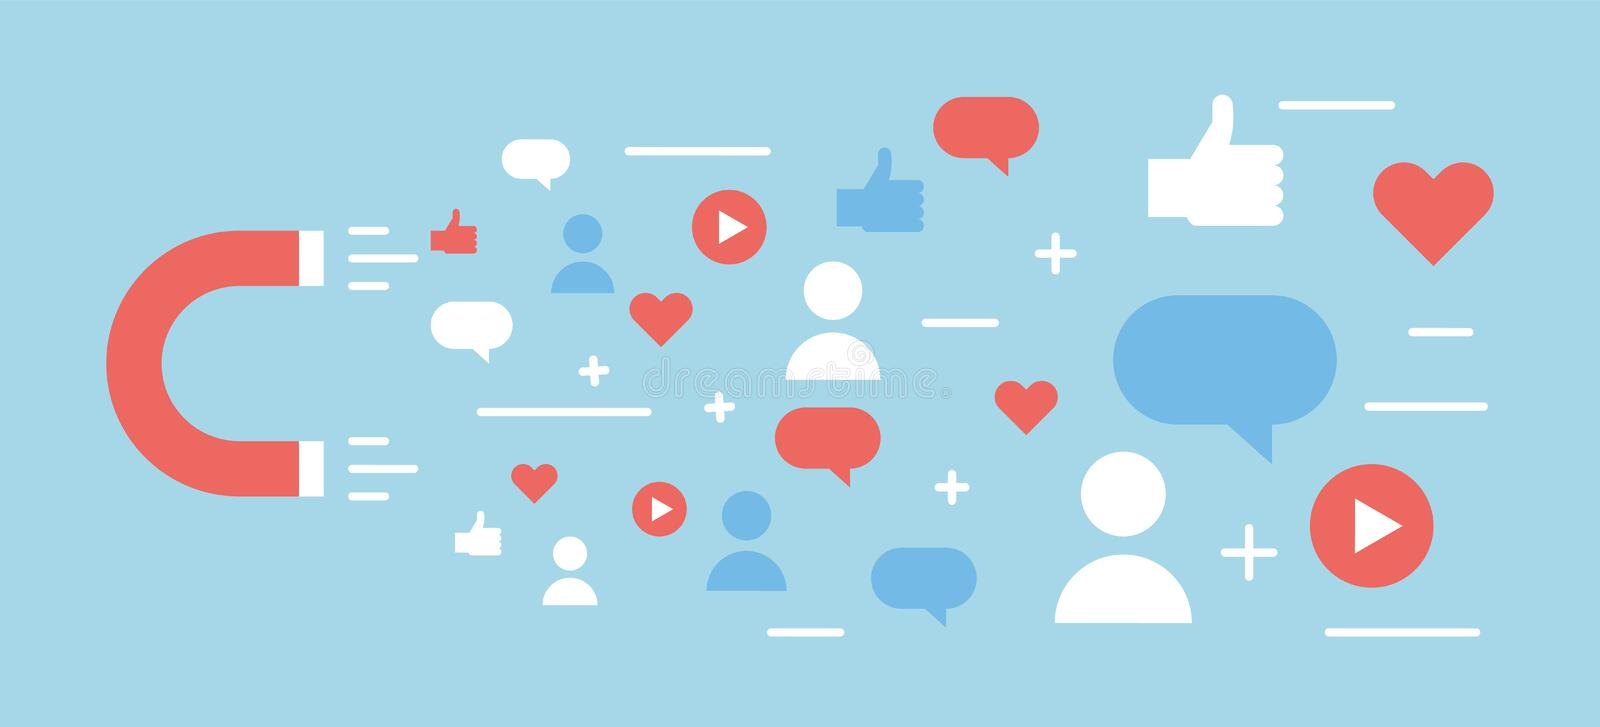 Online digital media magnet and influencer. Vector background illustration concept for popularity, likes, comments, followers. royalty free illustration